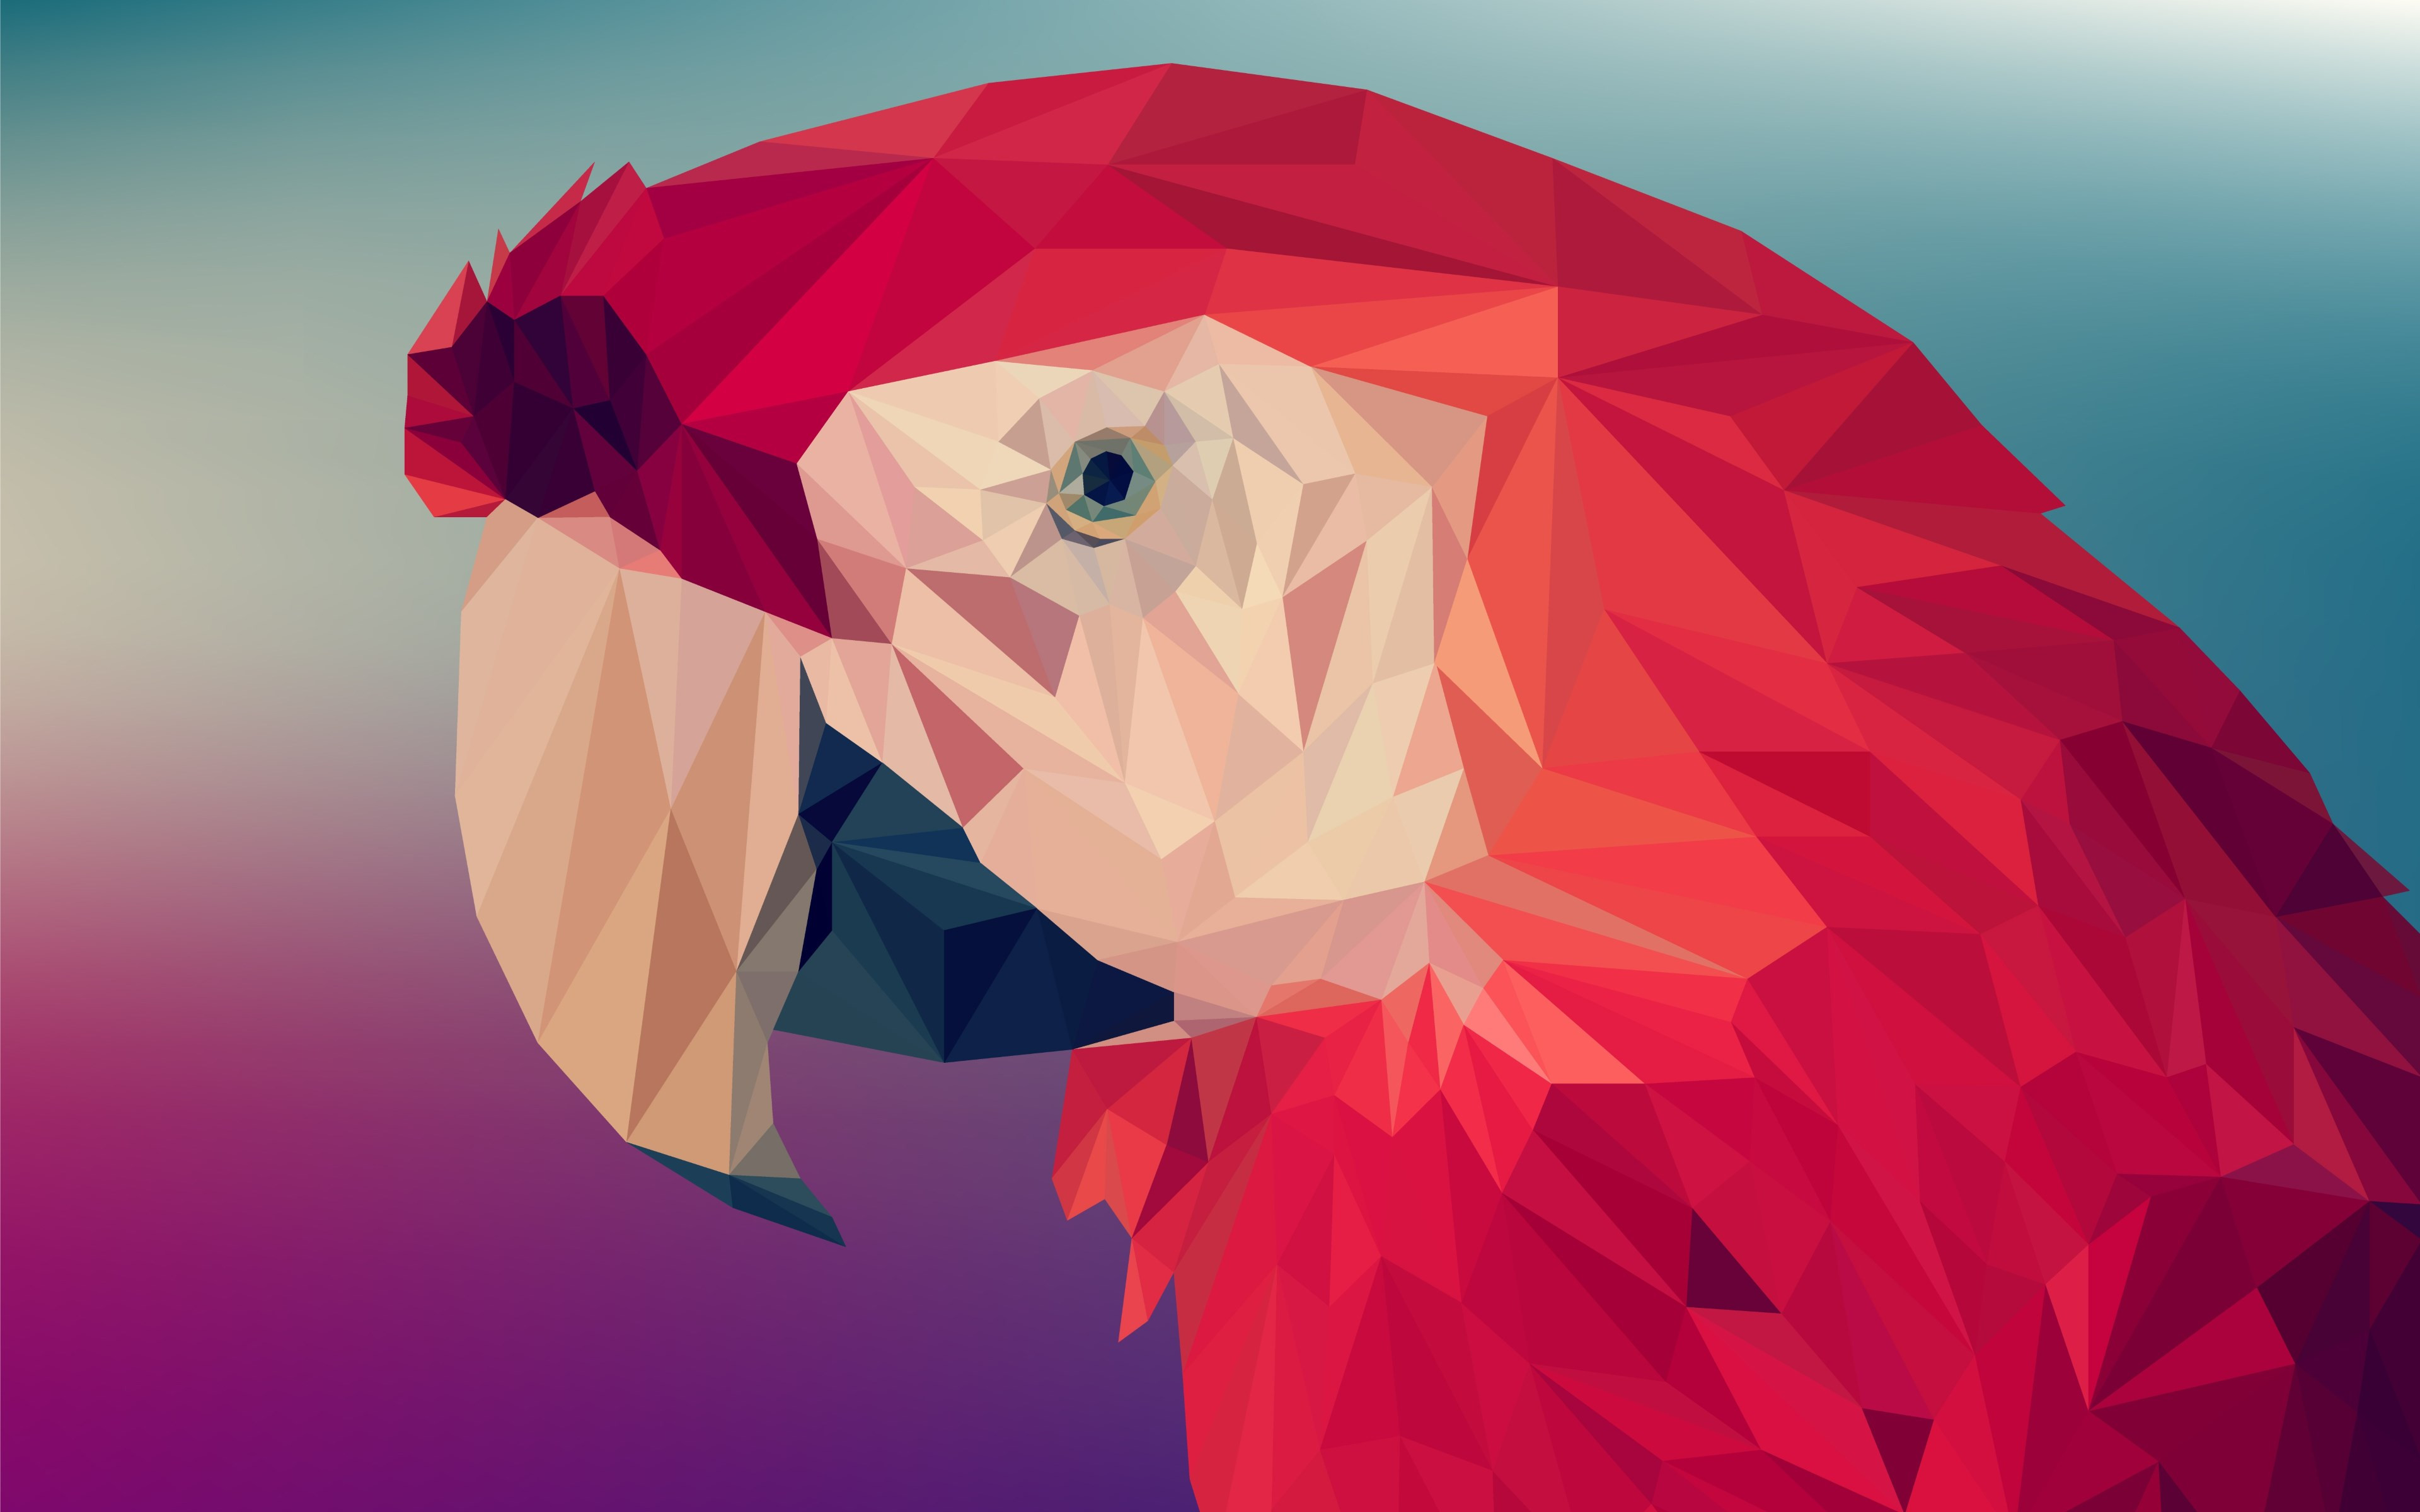 Low poly art: Red parrot wallpaper 3840x2400